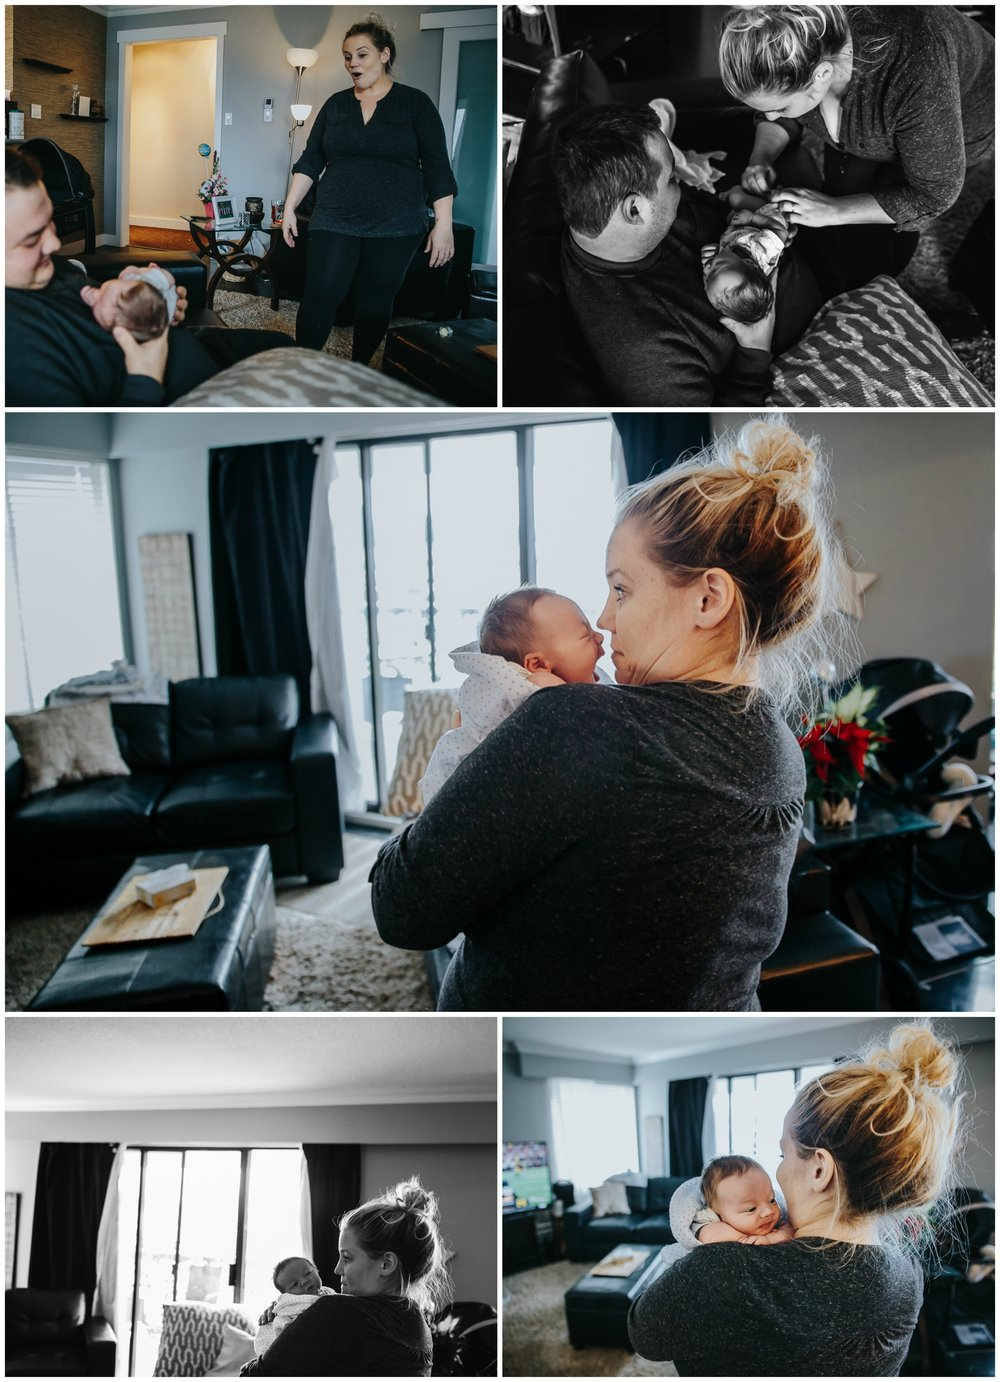 baby farts, funny faces.   In home documentary newborn session. Mimsical Photography, White Rock, British Columbia #newborn #lifestyle #documentary #reallife #babyboy #nursery #black #apartment #firstbaby #christmas #newparents